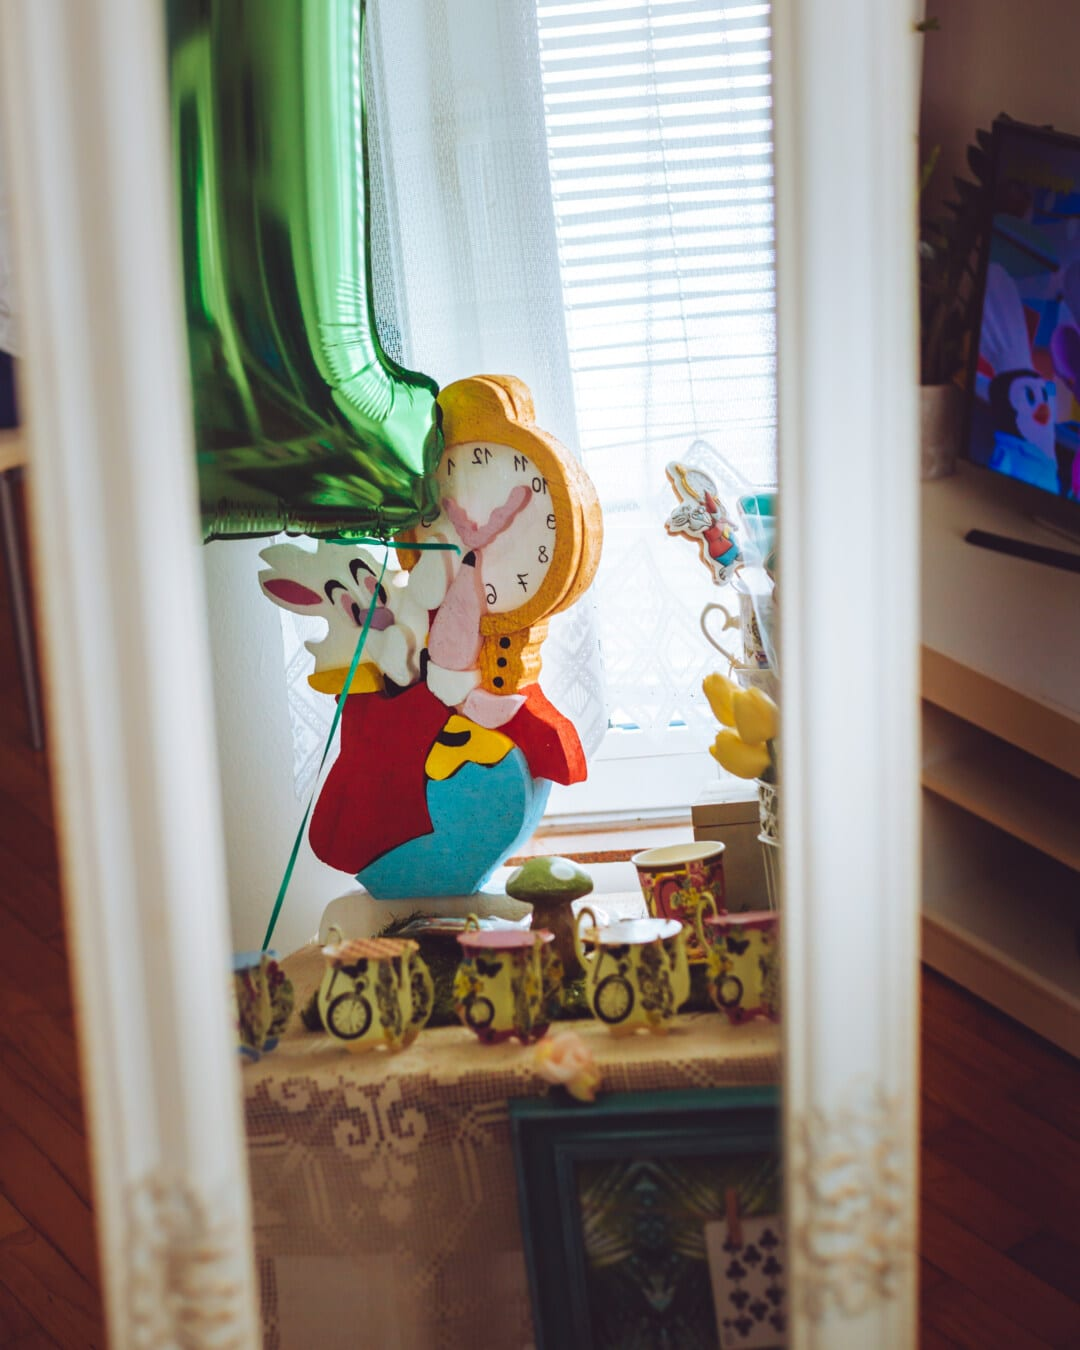 bunny, easter, toy, reflection, mirror, glass, furniture, indoors, window, people